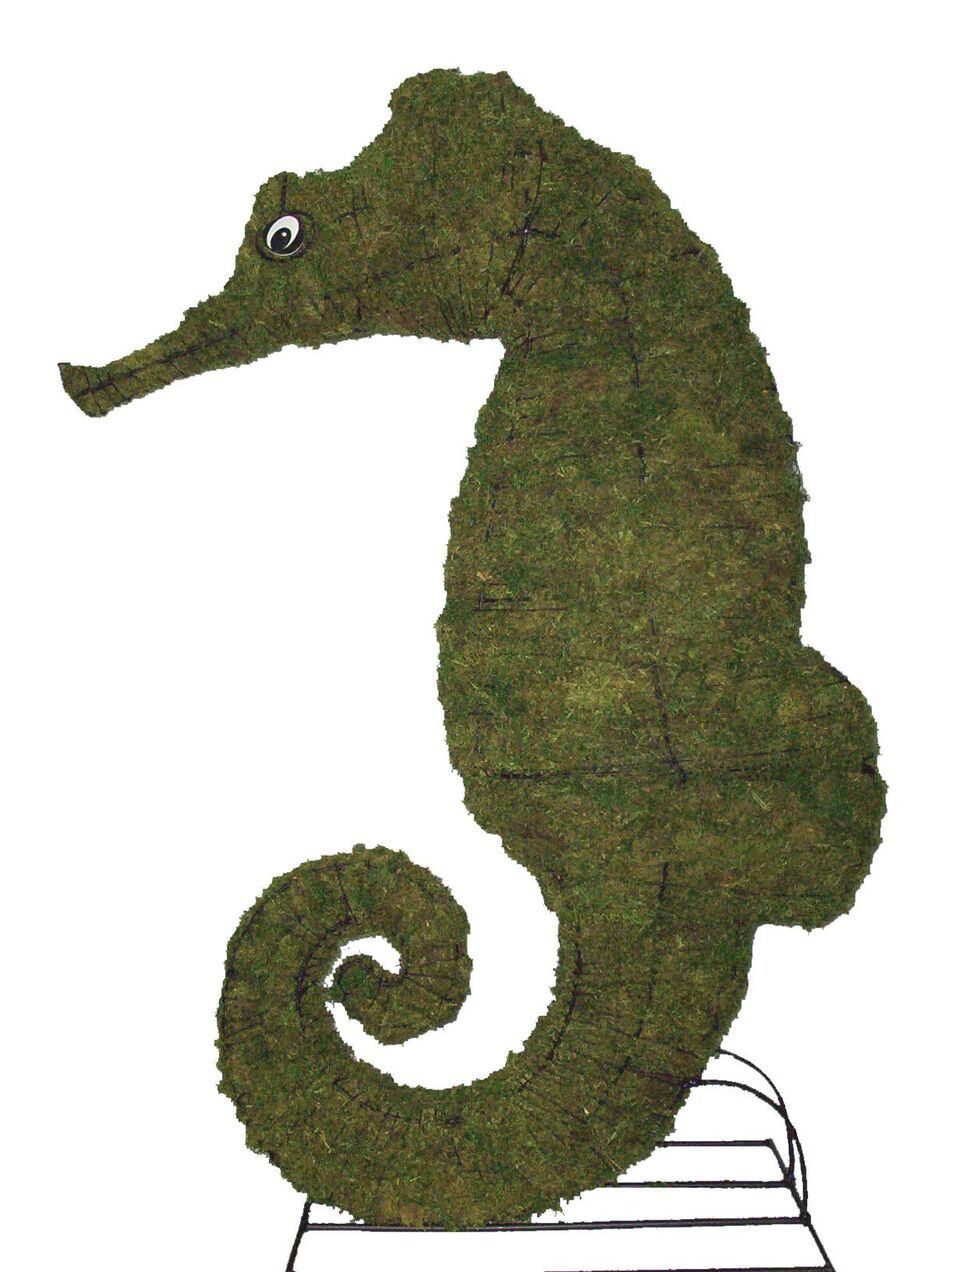 Seahorse steel topiary frame filled with green dyed sphagnum moss - Henderson Garden Supply